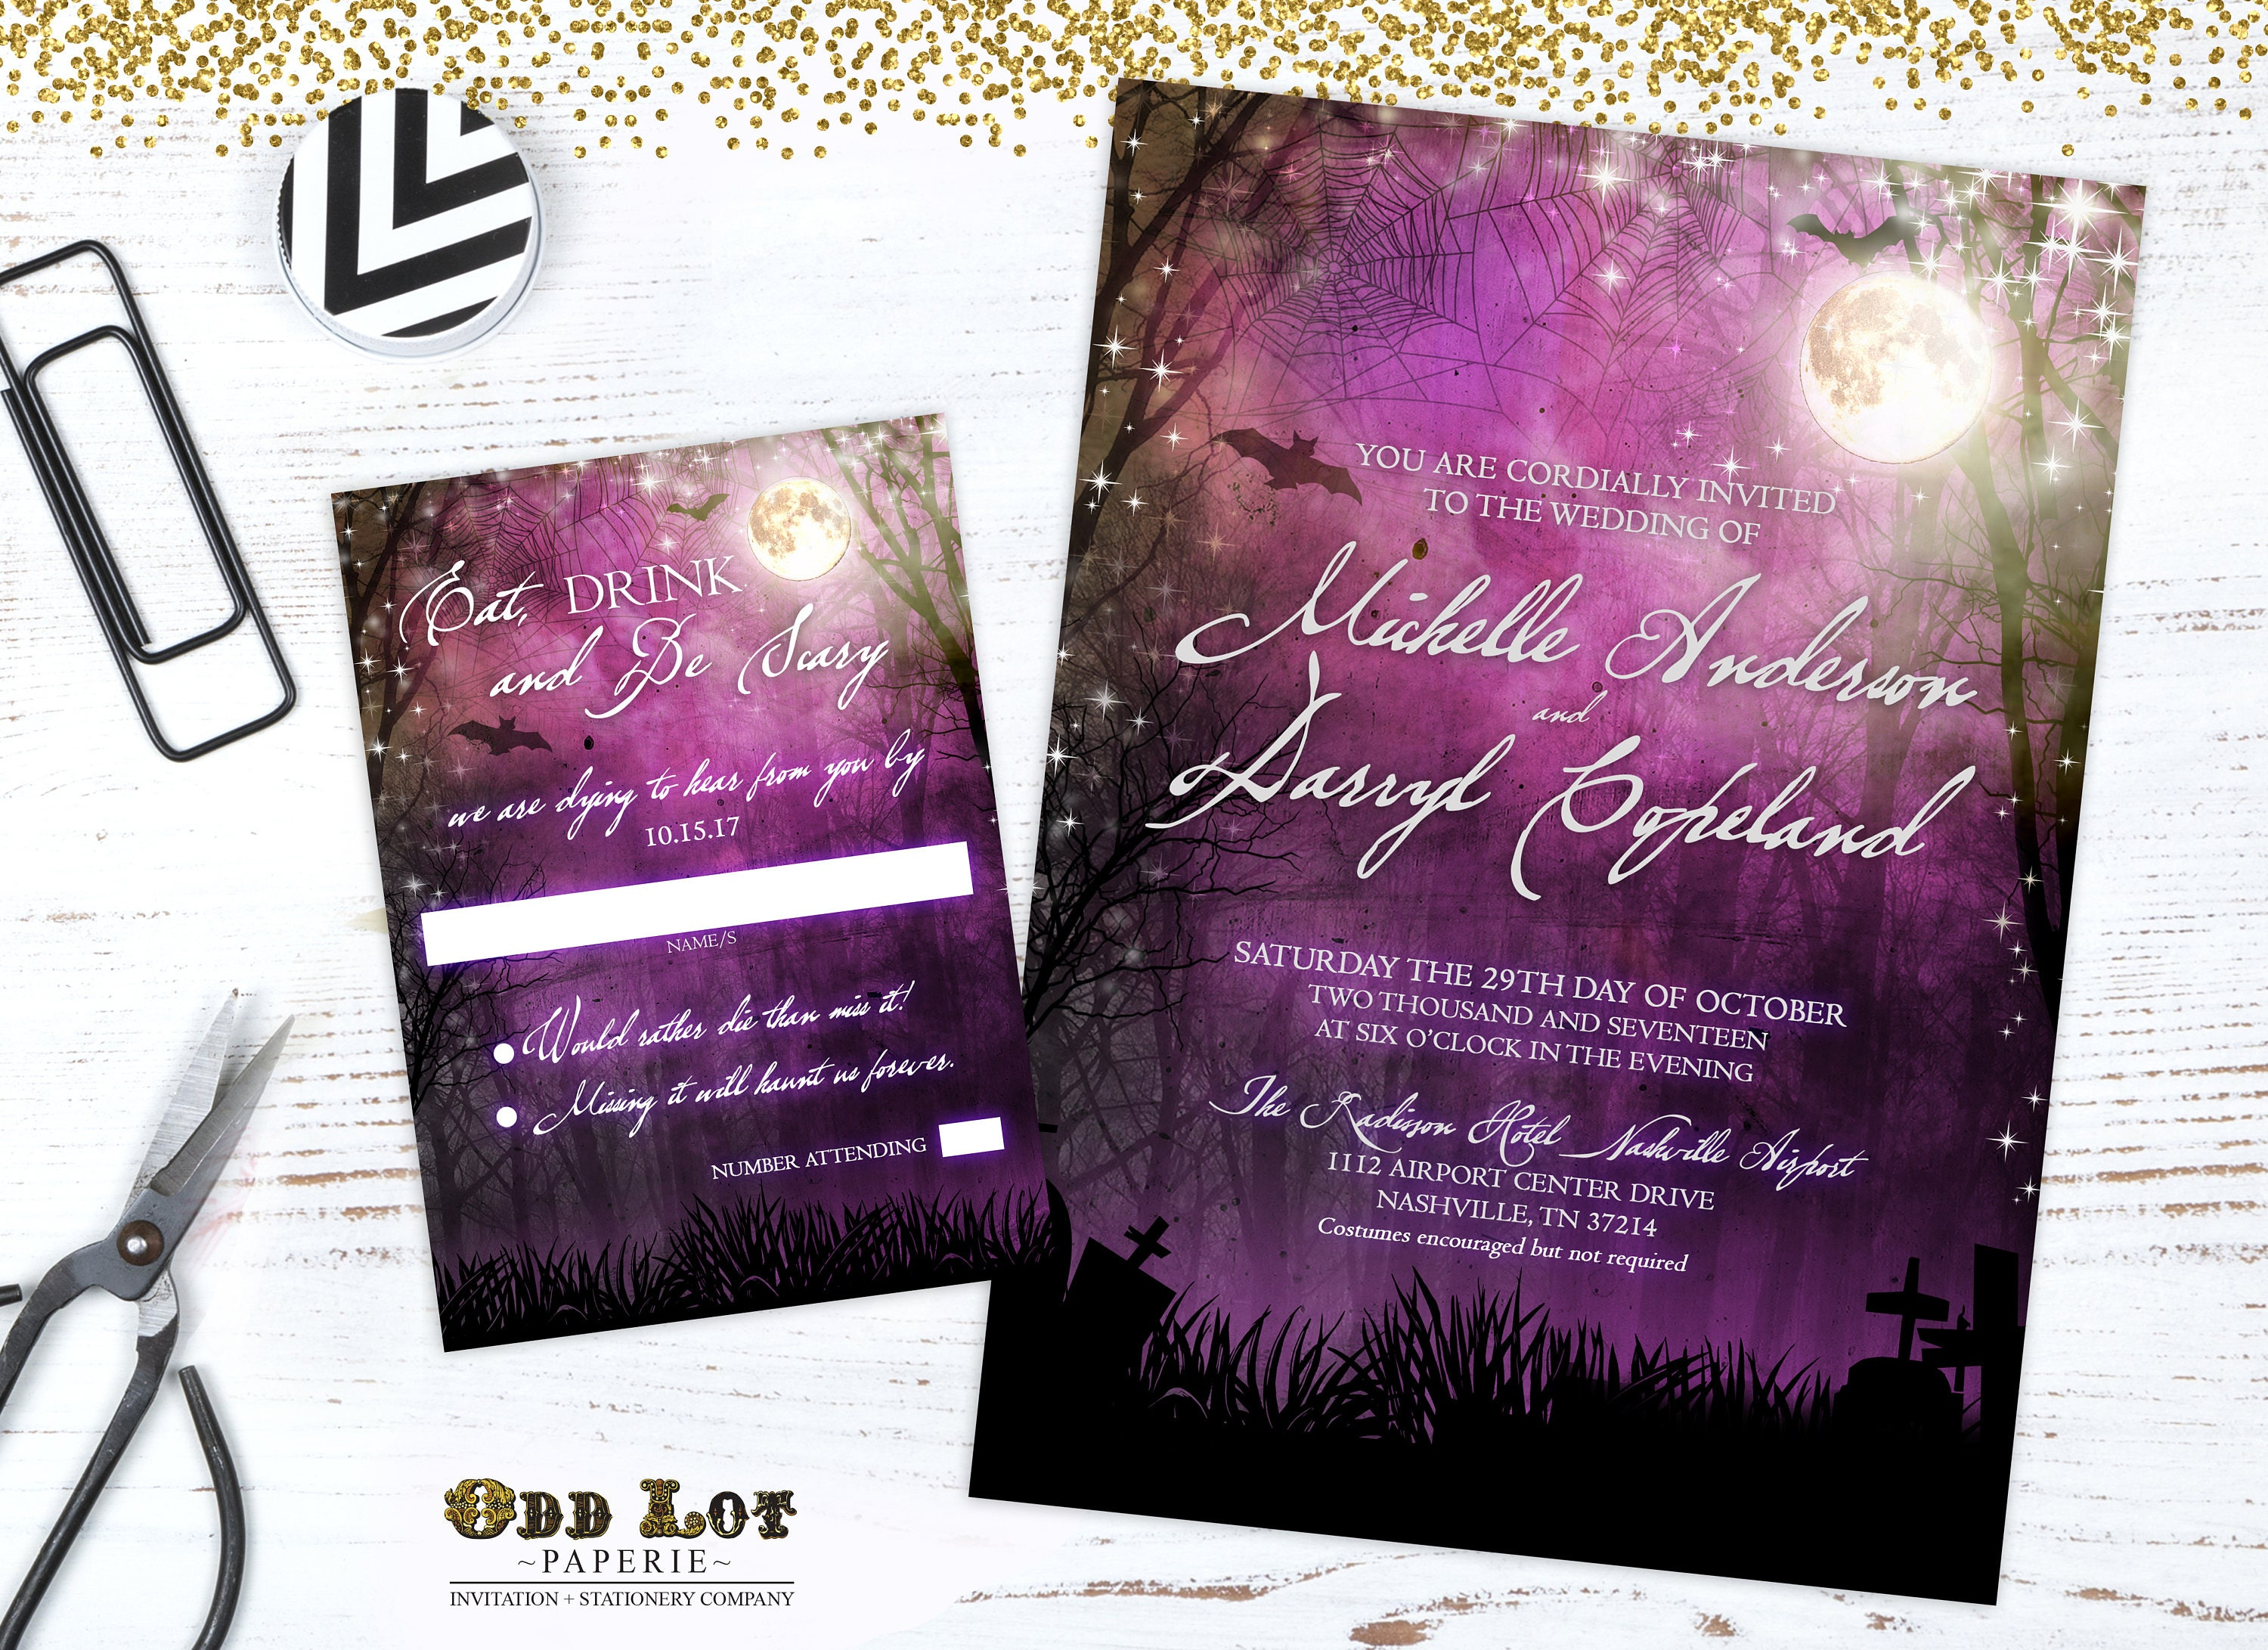 Halloween Wedding Invitation: Halloween Wedding Invitation Goth Wedding Invite Bat Wedding